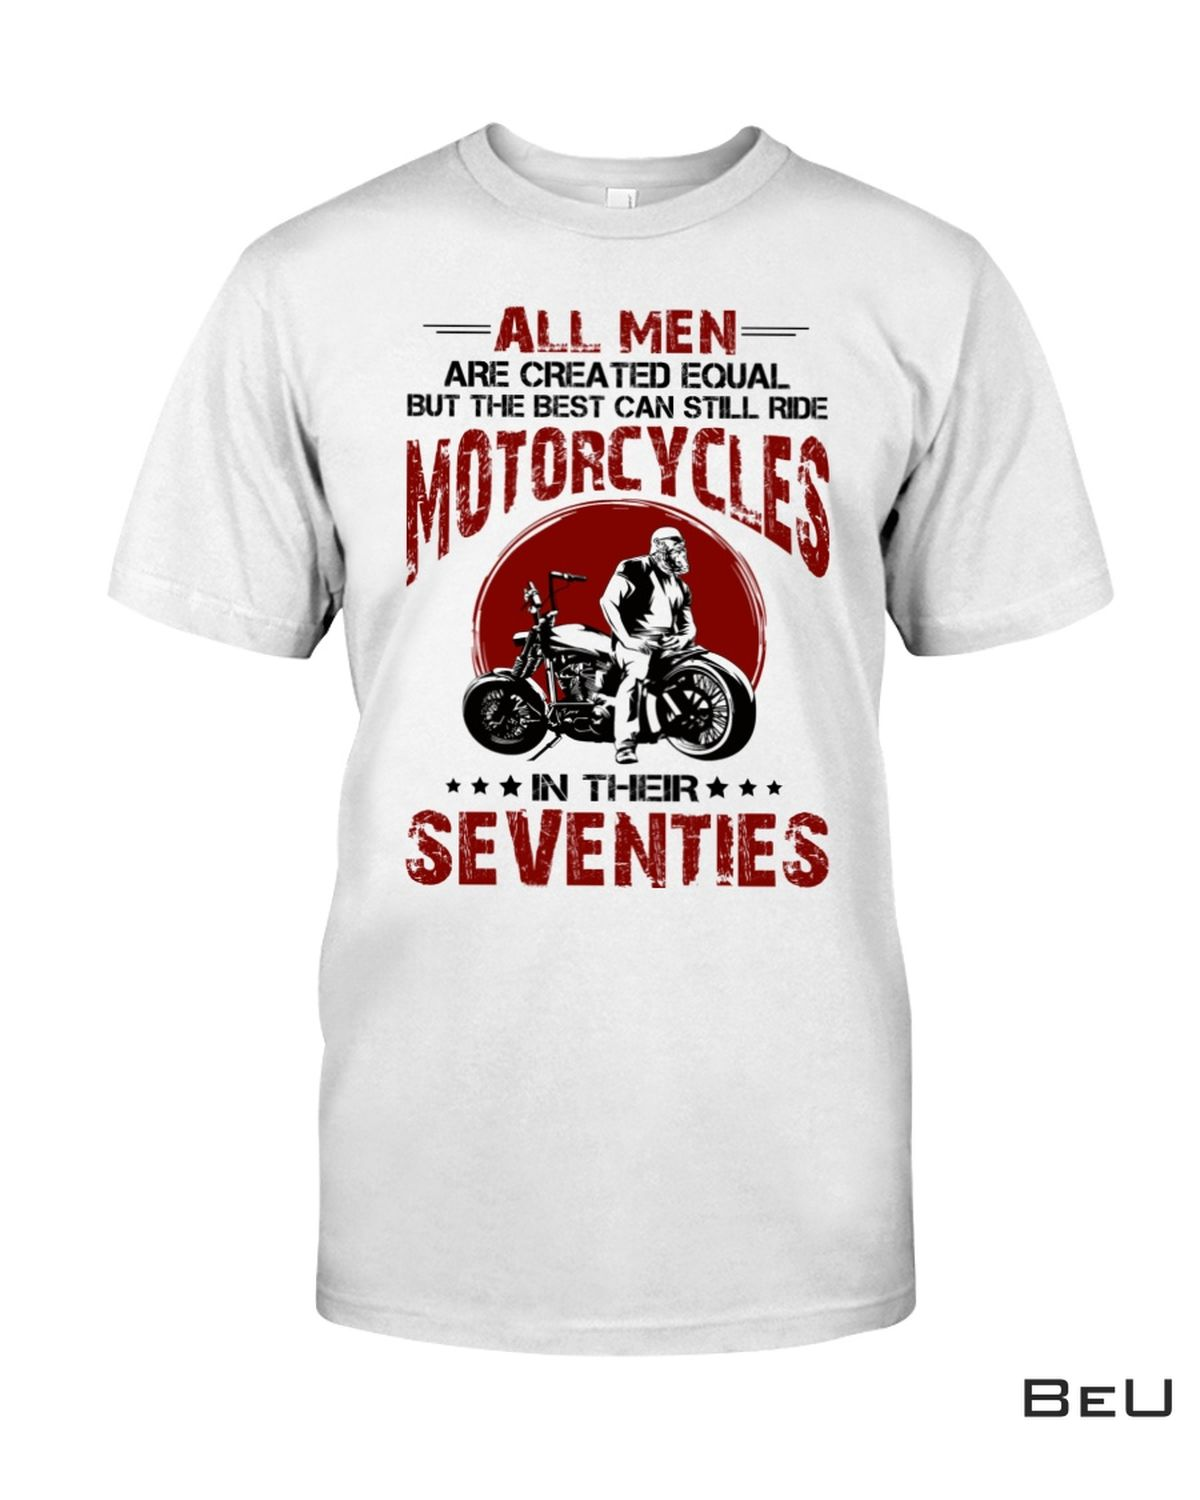 All Mens Are Created Equal But The Best Can Still Ride Motorcycles Shirt, hoodie, tank top